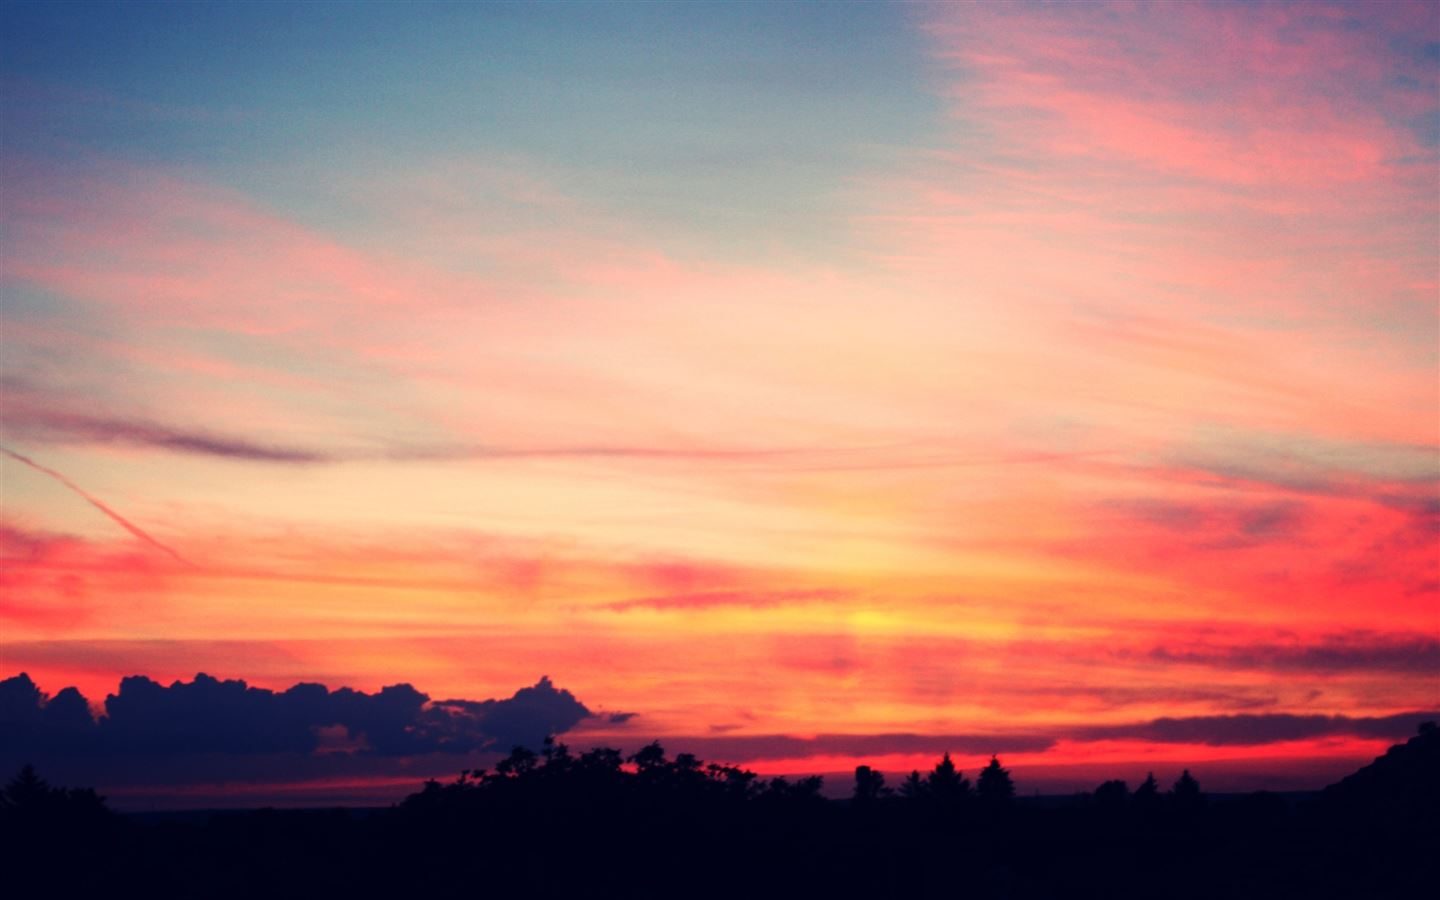 Sunset 16 Mac Wallpaper Download | Free Mac Wallpapers ...